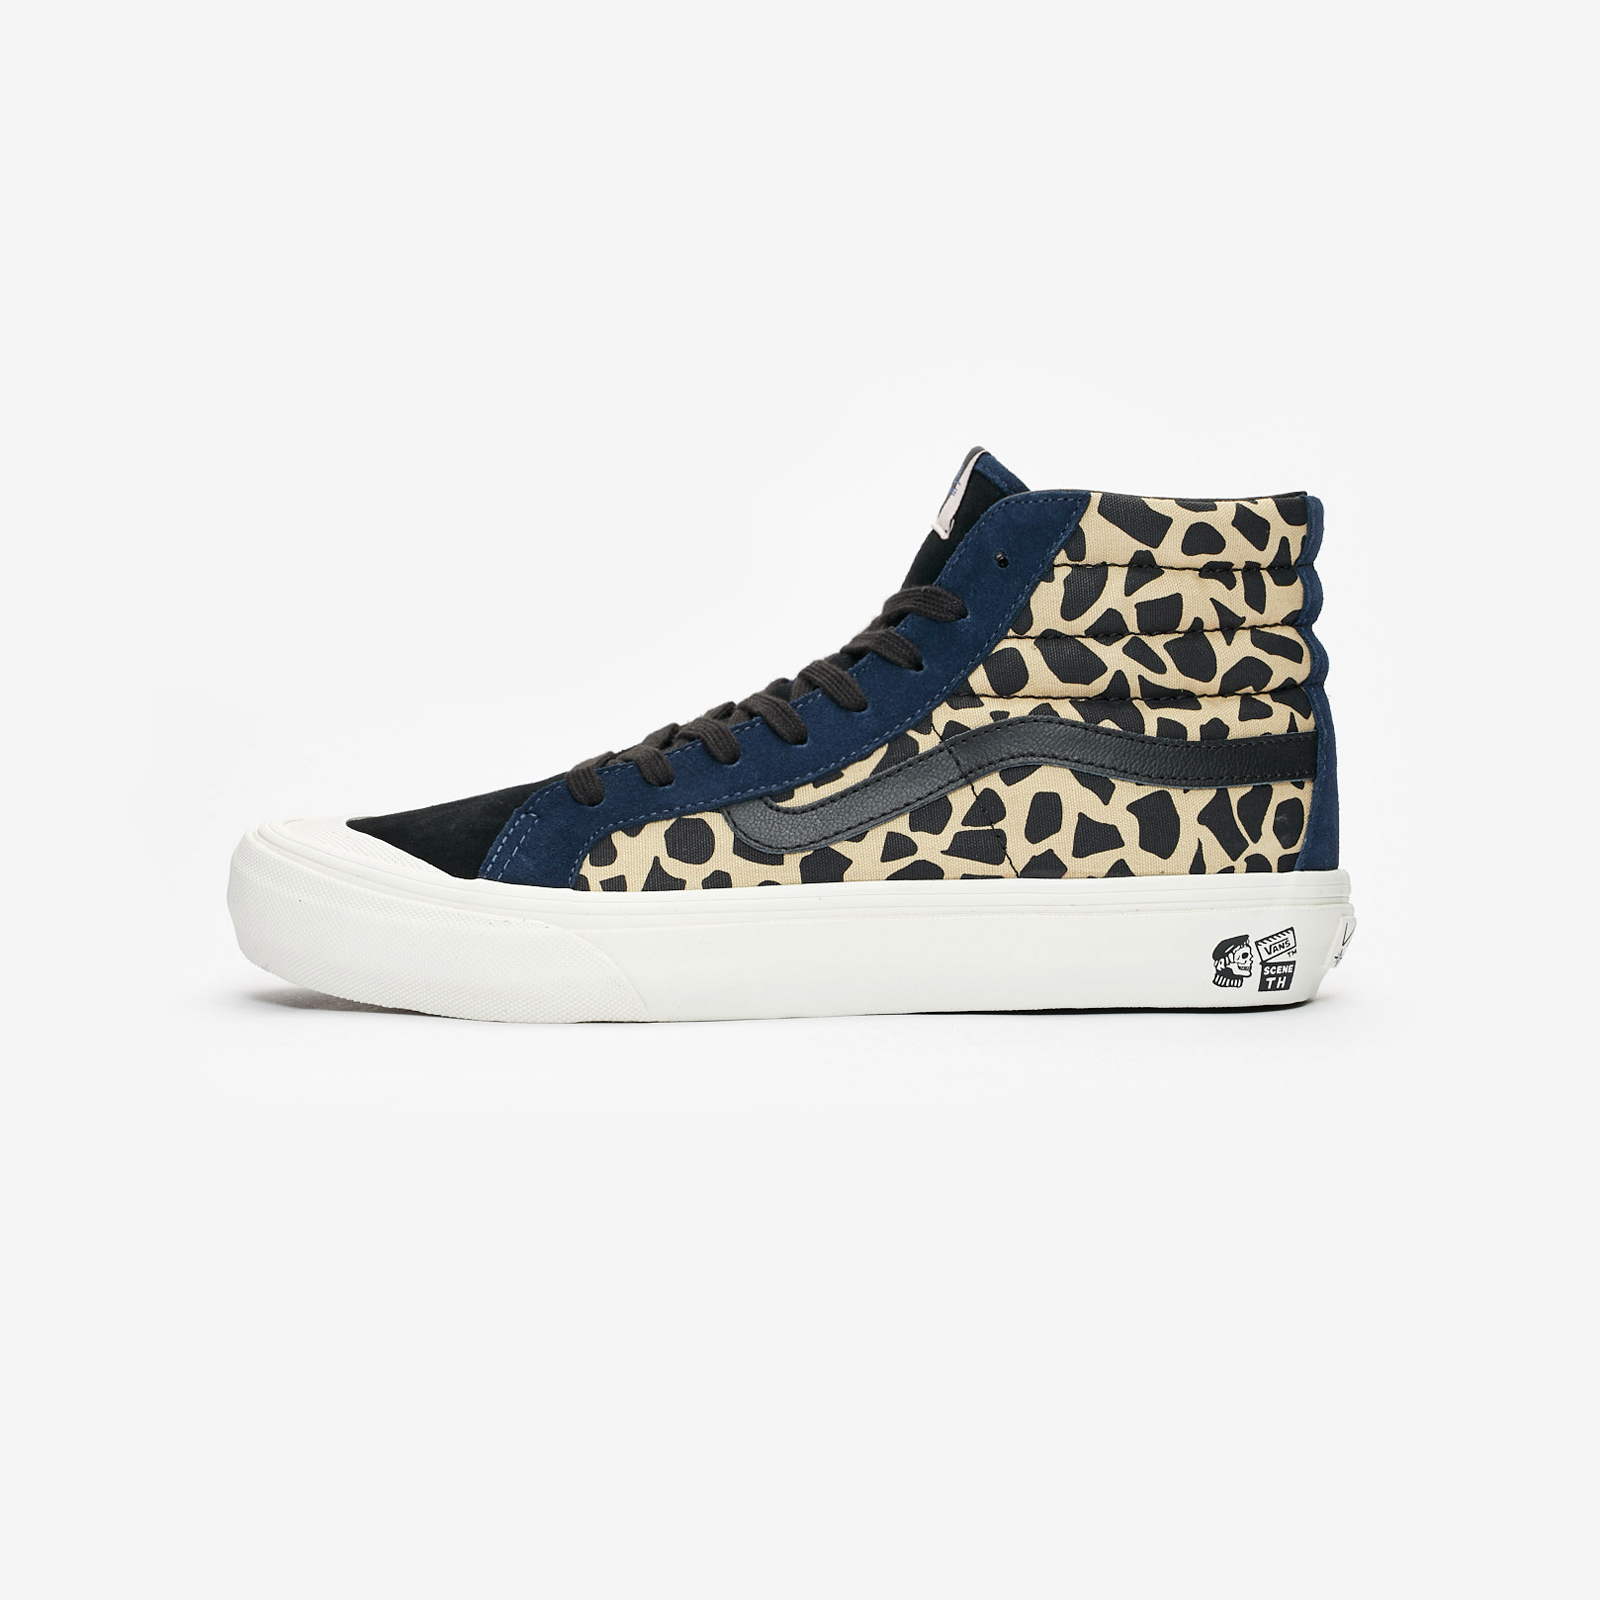 3f235e3fcb6 Vans TH Style 138 LX - Vn0a3zcoure - Sneakersnstuff